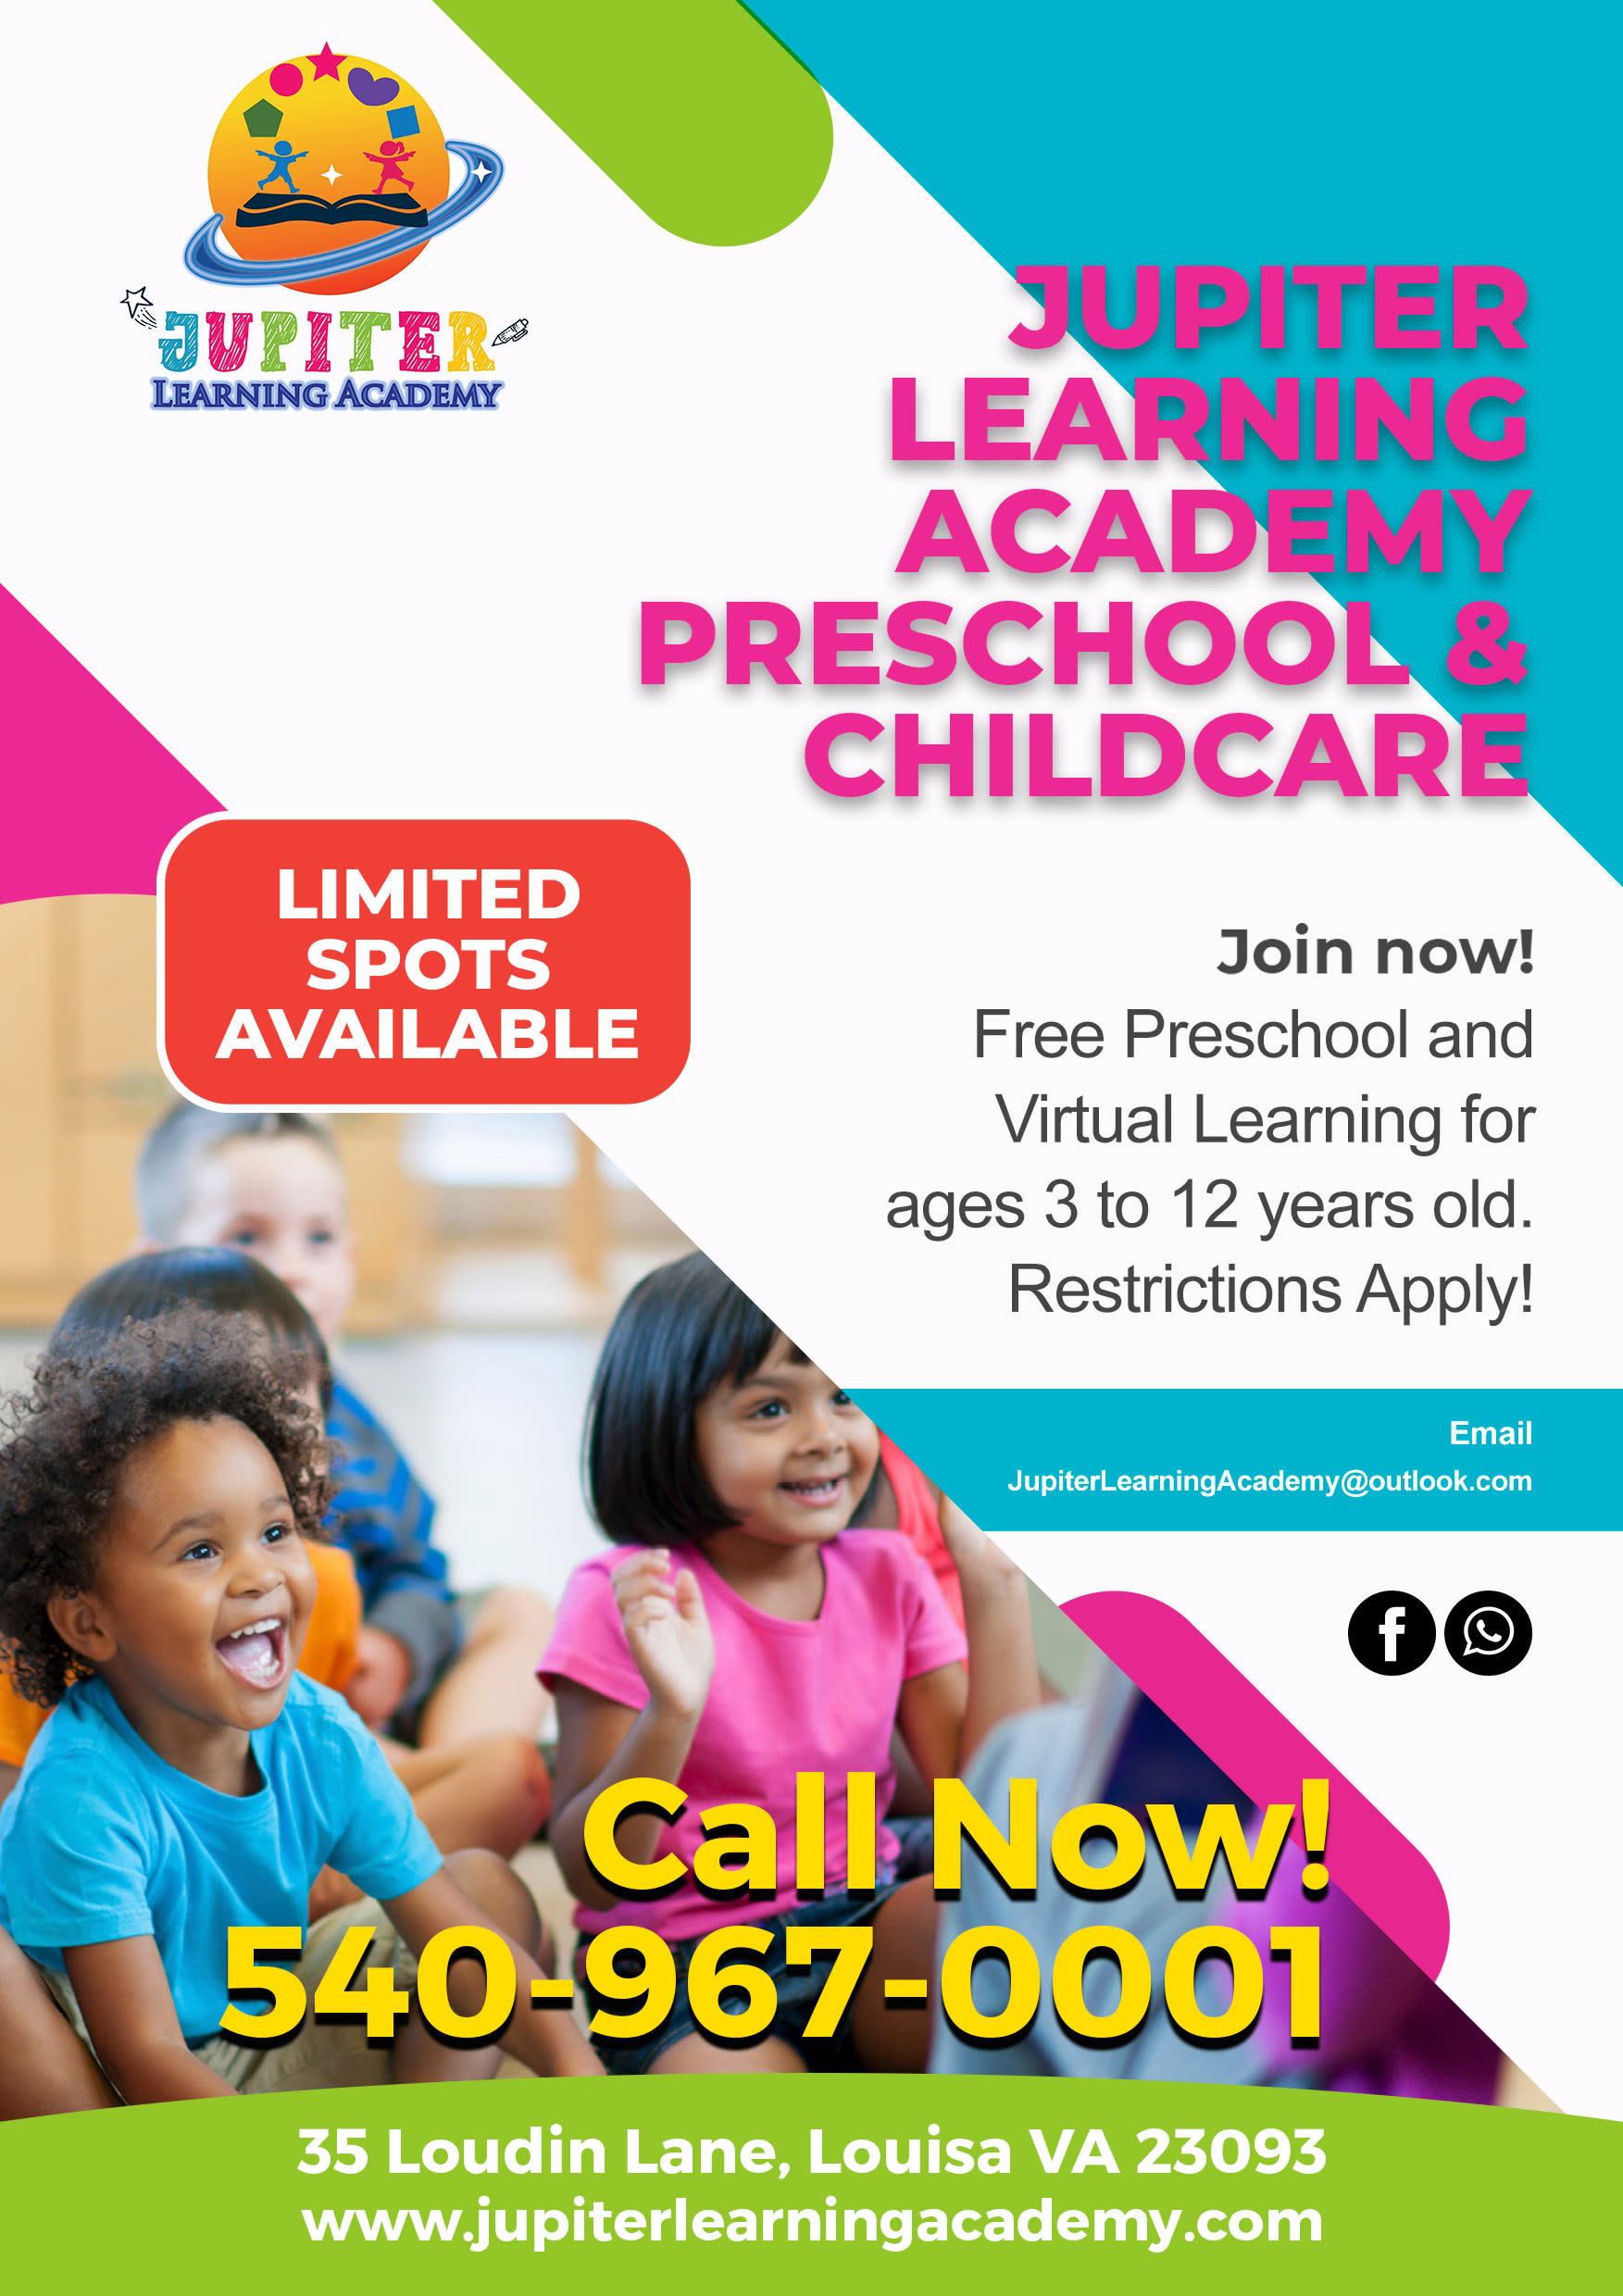 FREE PRESCHOOL & VIRTUAL LEARNING